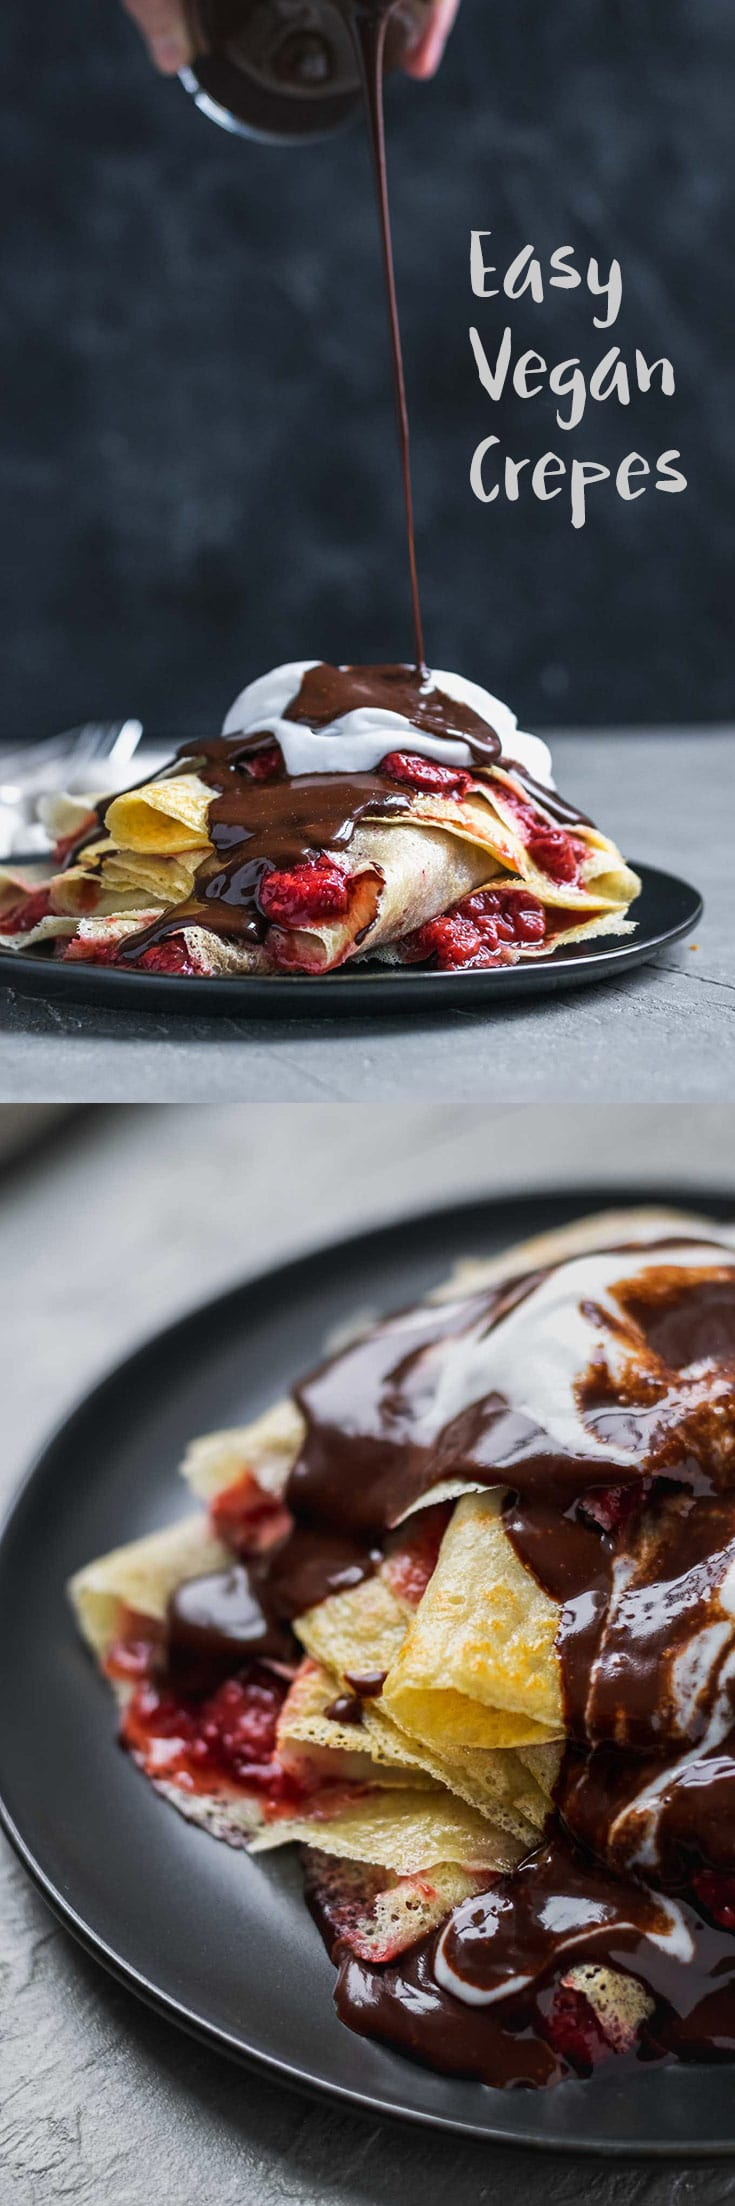 Easy Vegan Crepes | With just 6 ingredients these crepes are so easy to make! They're the perfect base for sweet or savory fillings. Here they are served with a strawberry compote, coconut whipped cream, and a chocolate drizzle. Let your imagination go wild! | thecuriouschickpea.com #vegan #veganbrunch #crepes